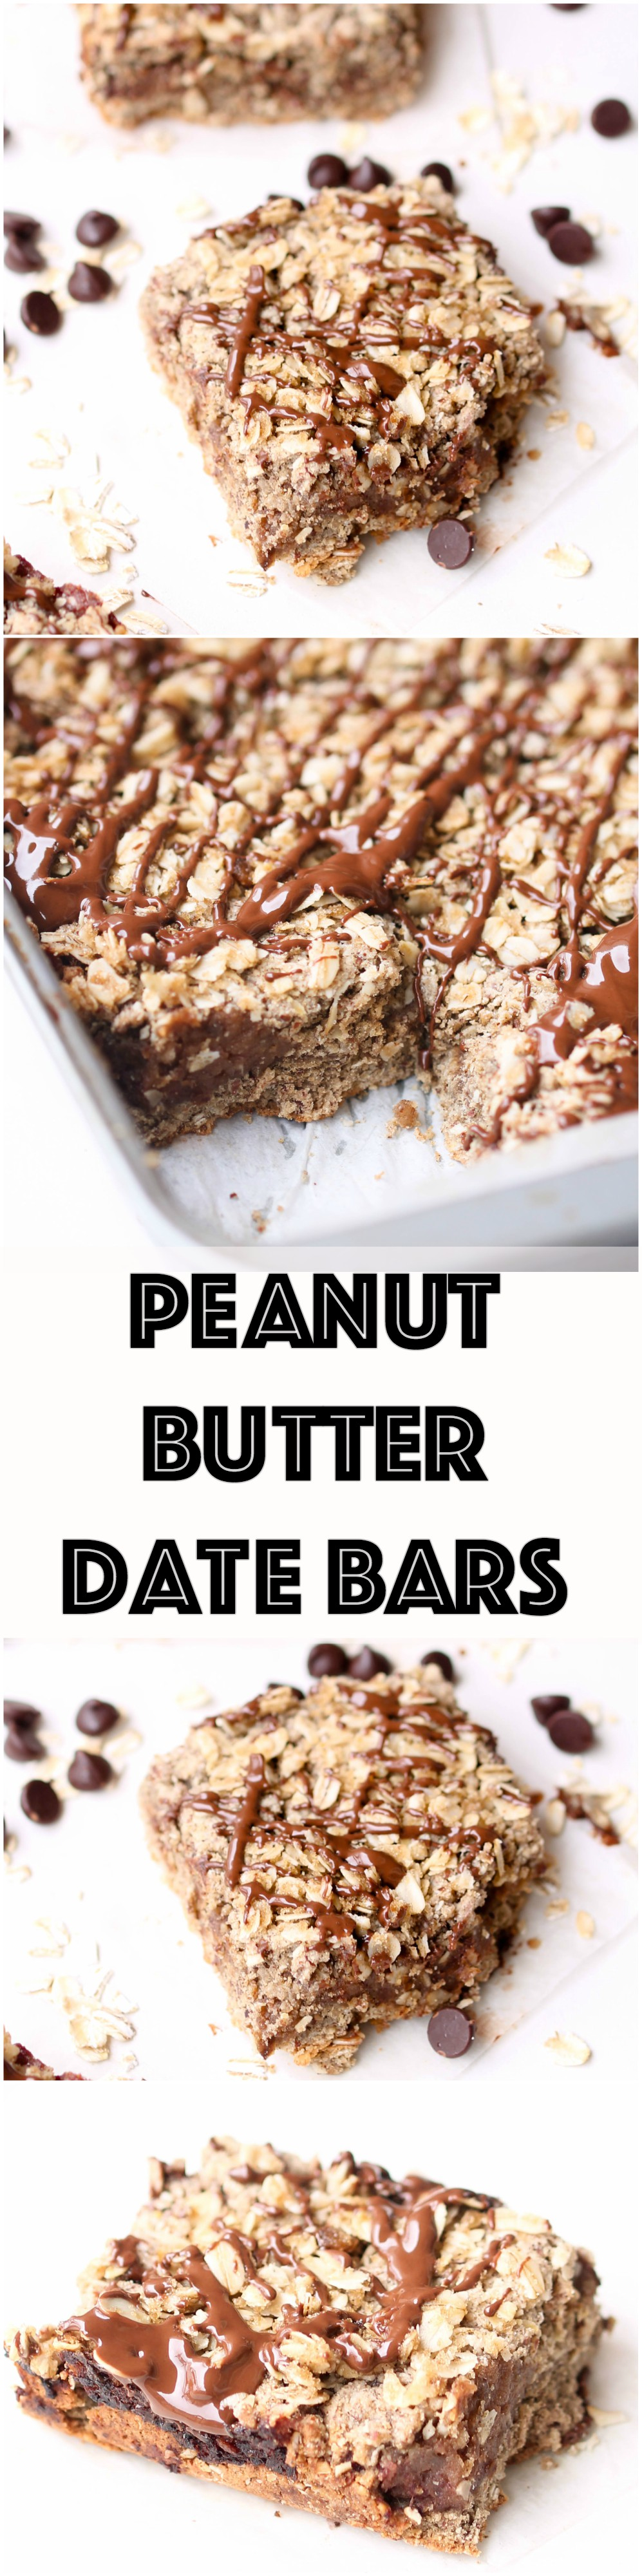 Peanut Butter Date Bars - these vegan, gluten-free bar are perfect for snacking, dessert, or even breakfast! Make a large batch and enjoy it throughout the week.